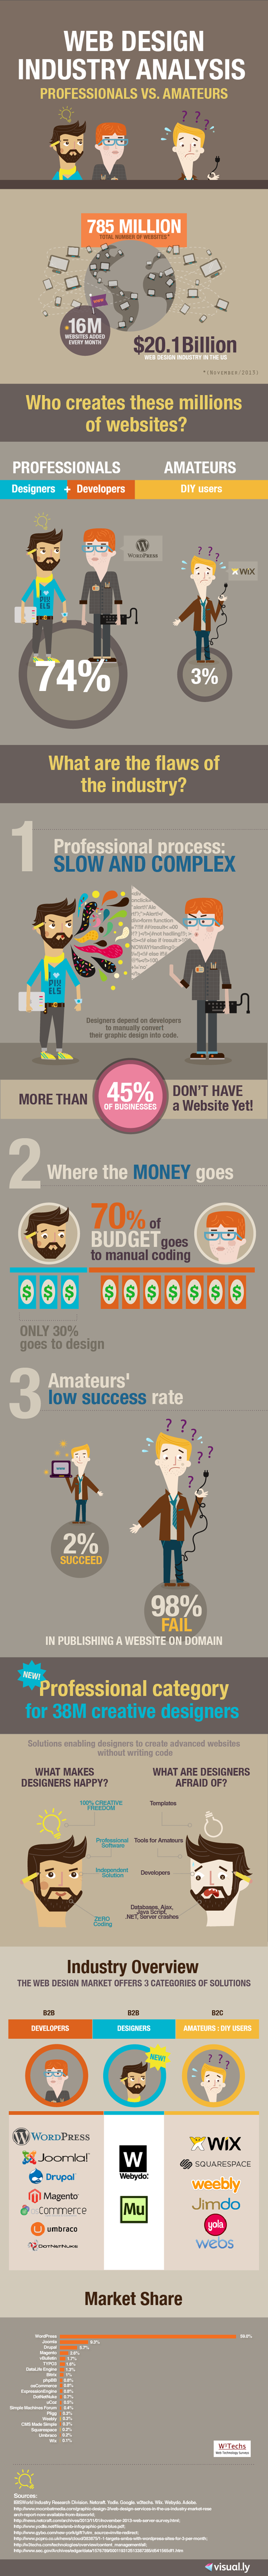 Web Design Industry Analysis professionals vs. amateurs Infographic